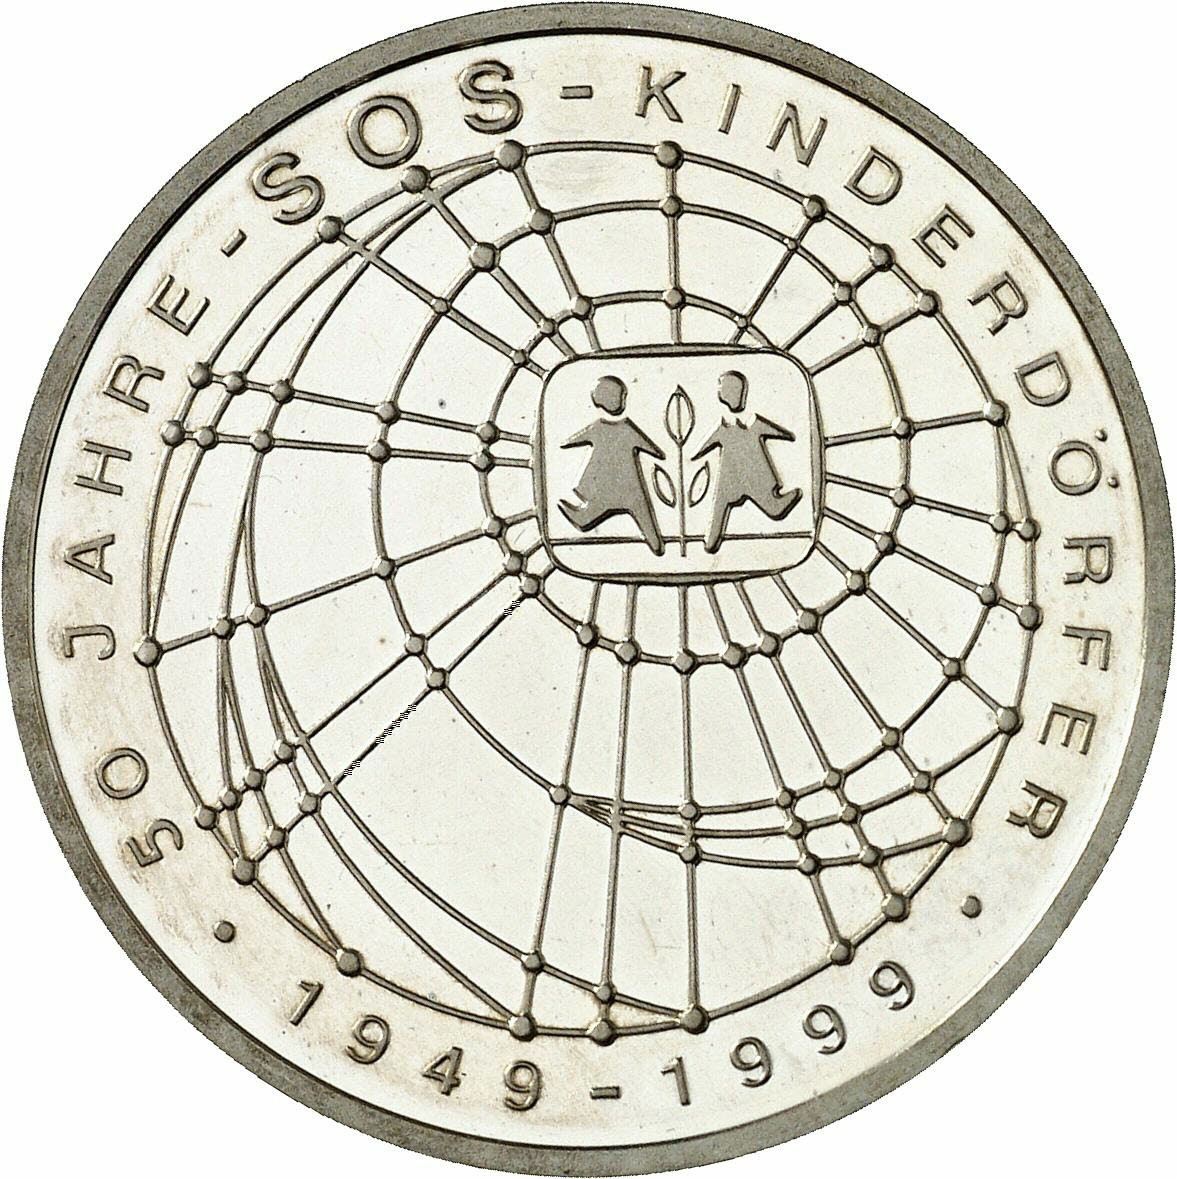 DE 10 Deutsche Mark 1999 J